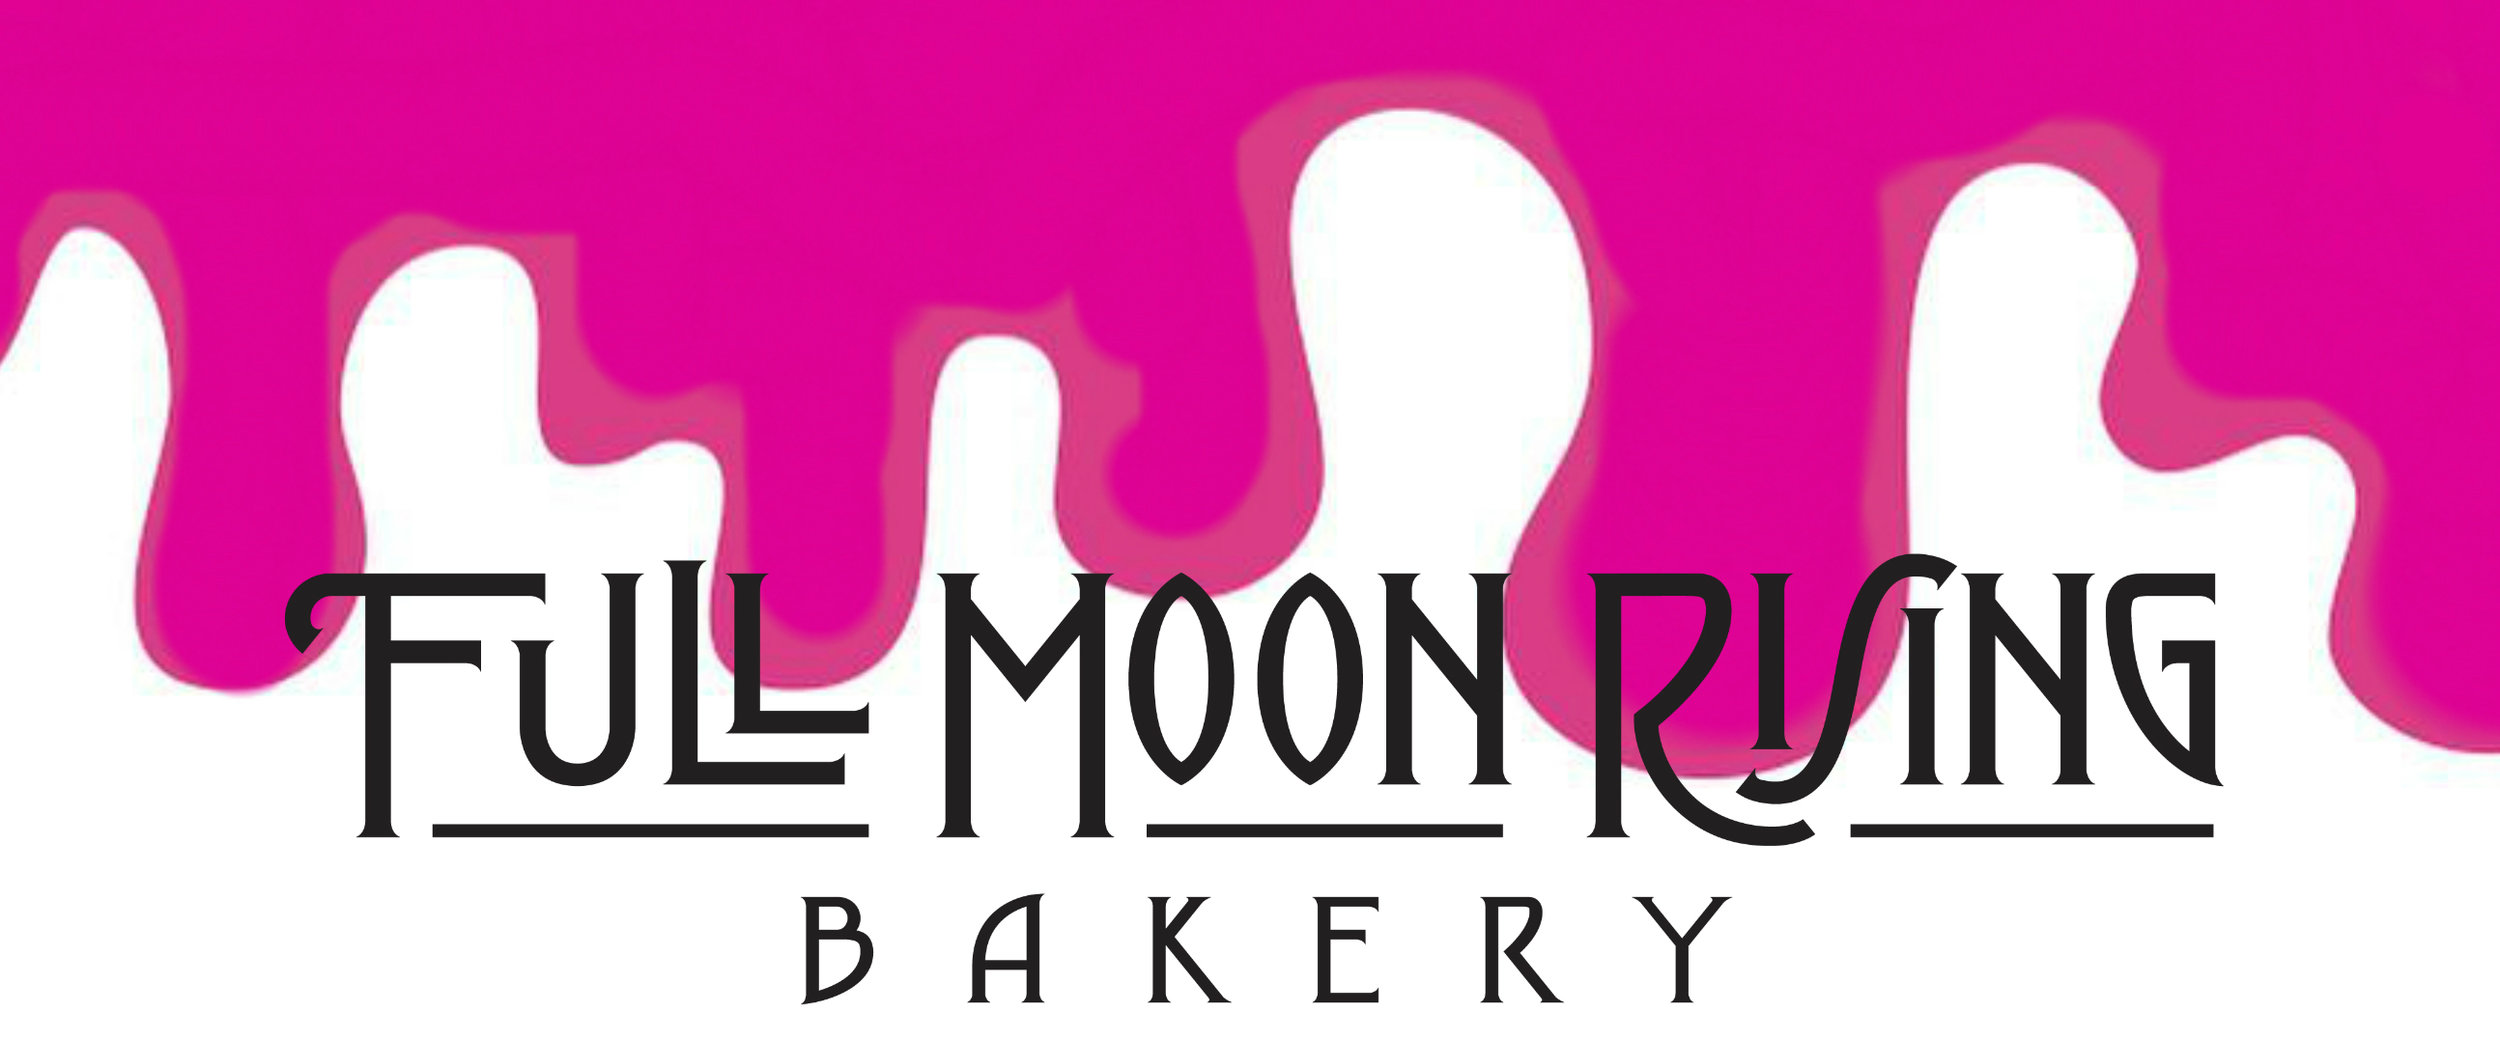 parties at Full moon rising bakery! - celebrate any occasion with Full Moon Rising Bakery!